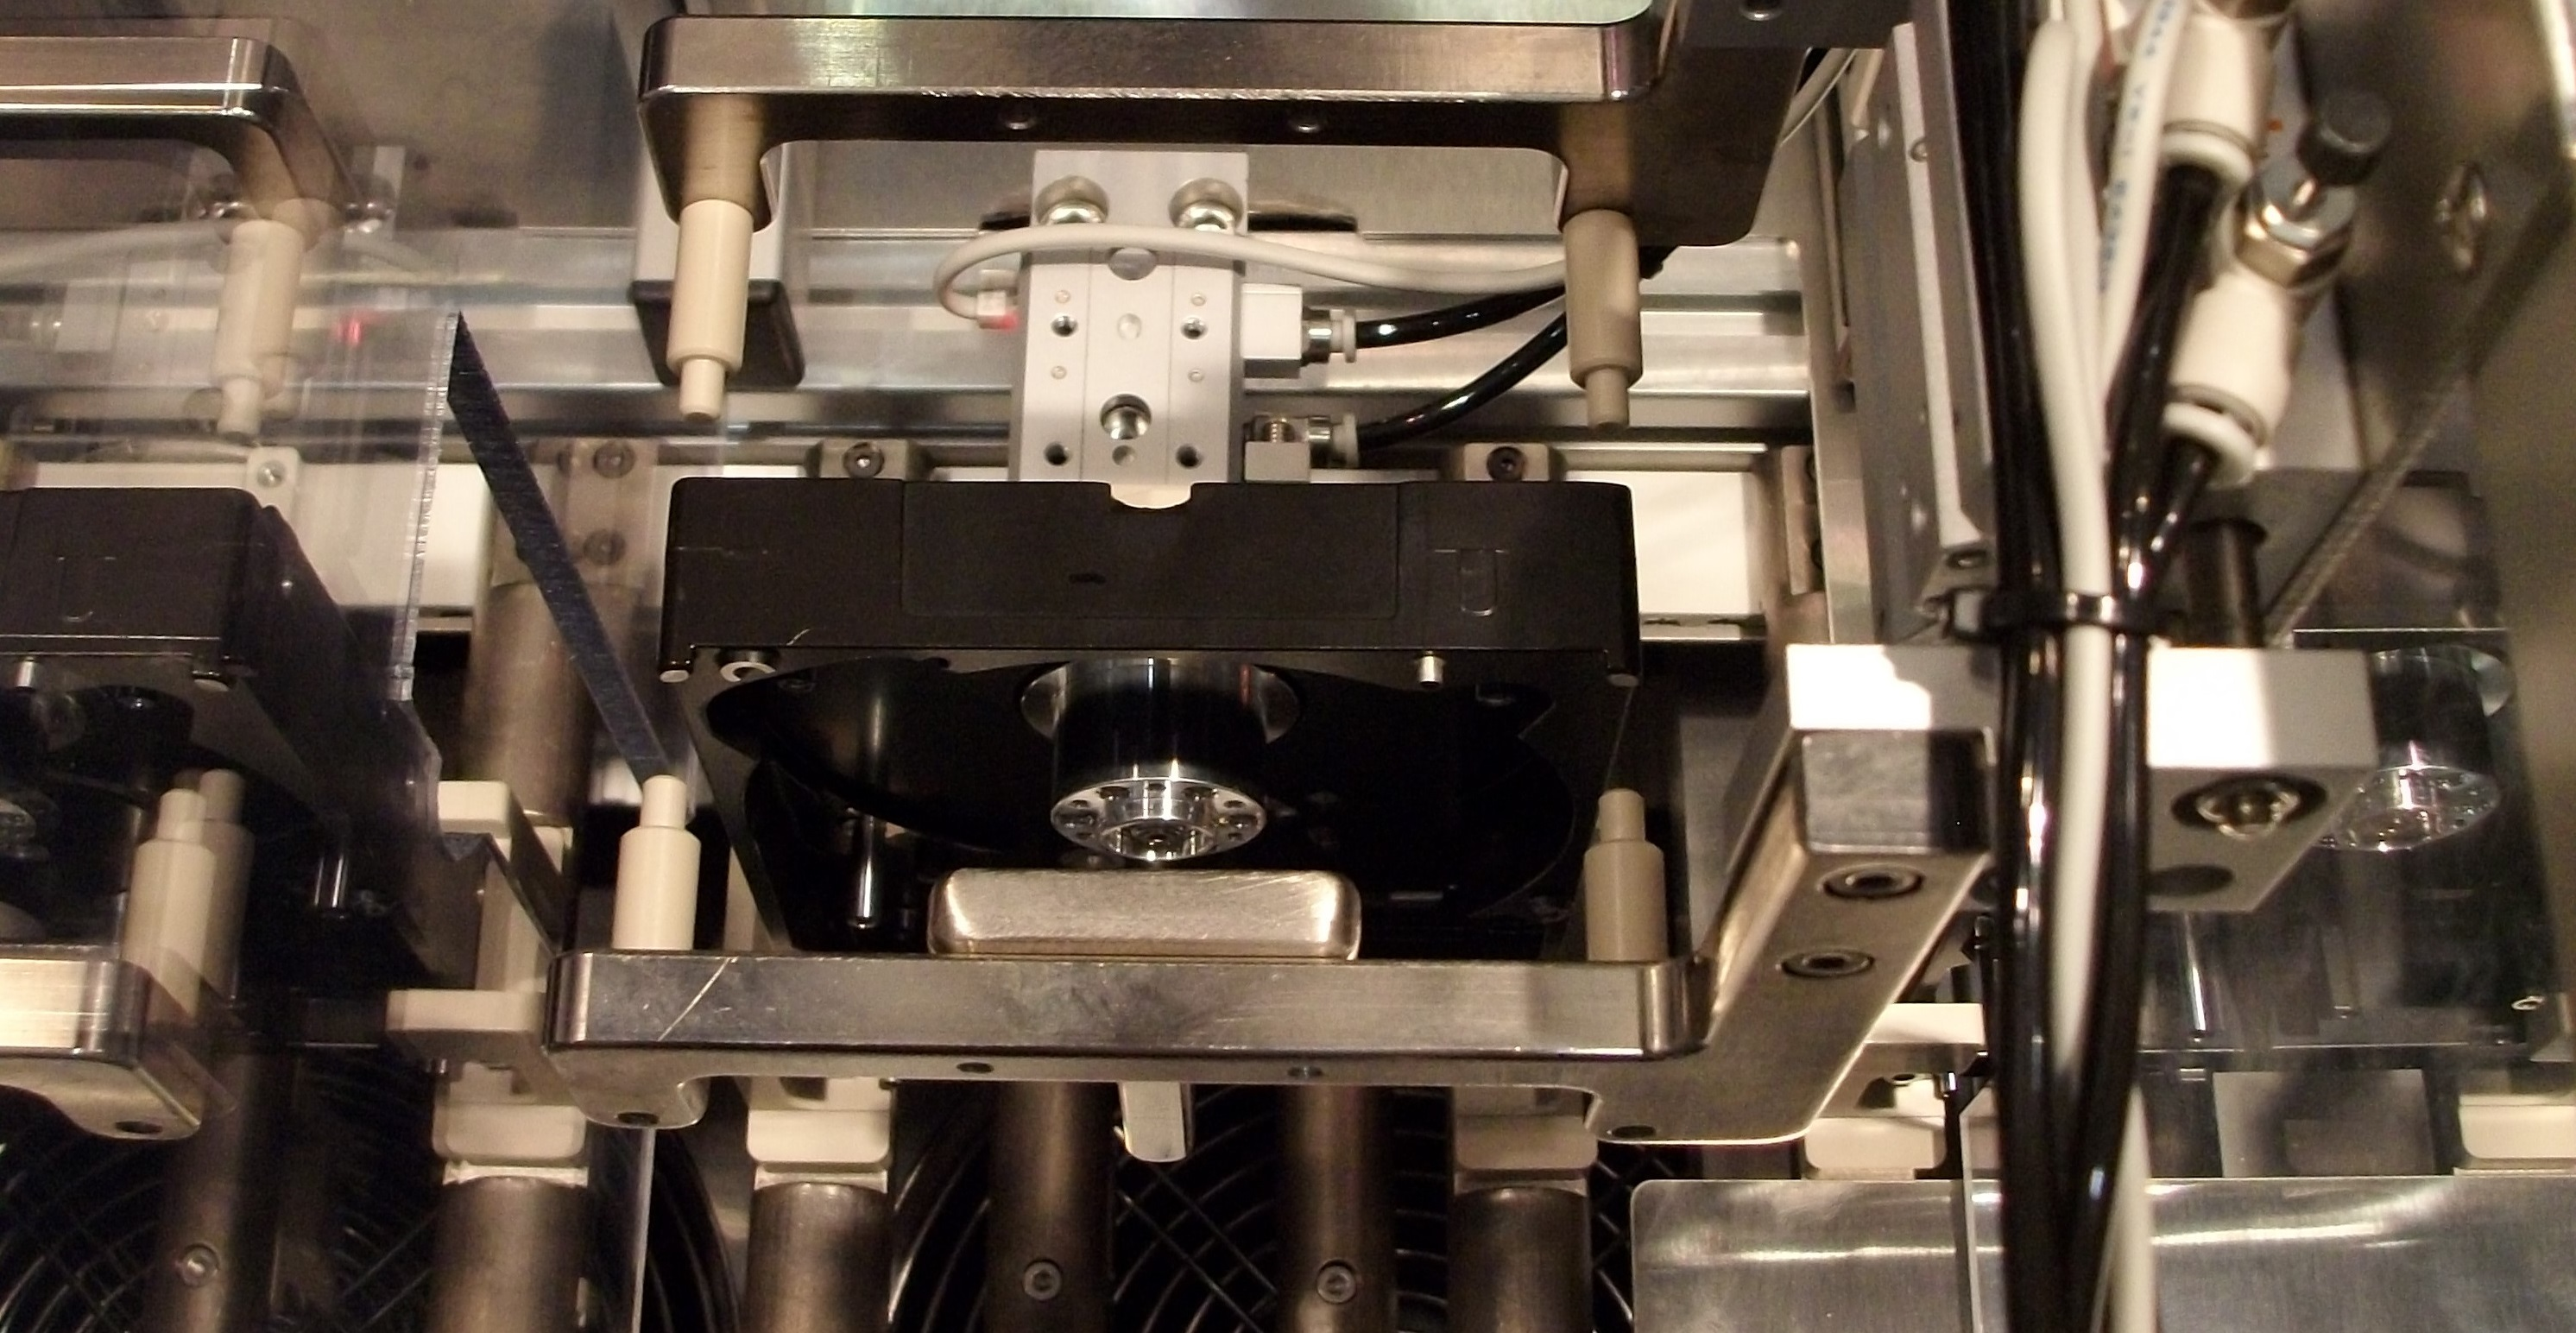 Linear based assembly for CO2 cleaning